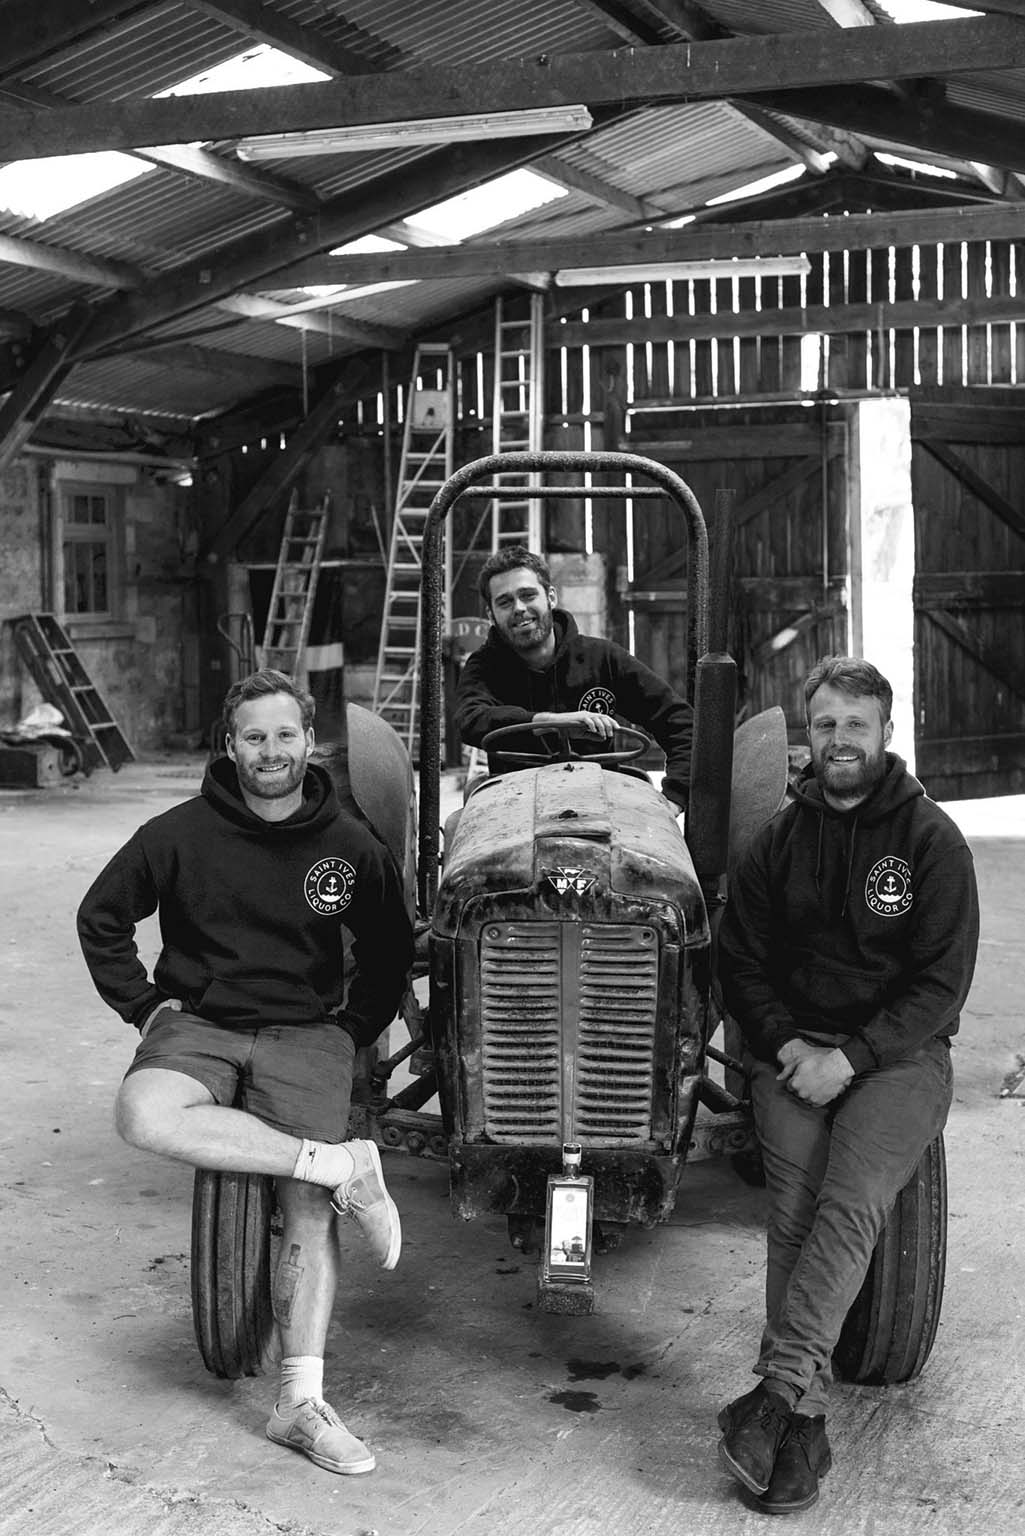 Thompson Brothers on a tractor